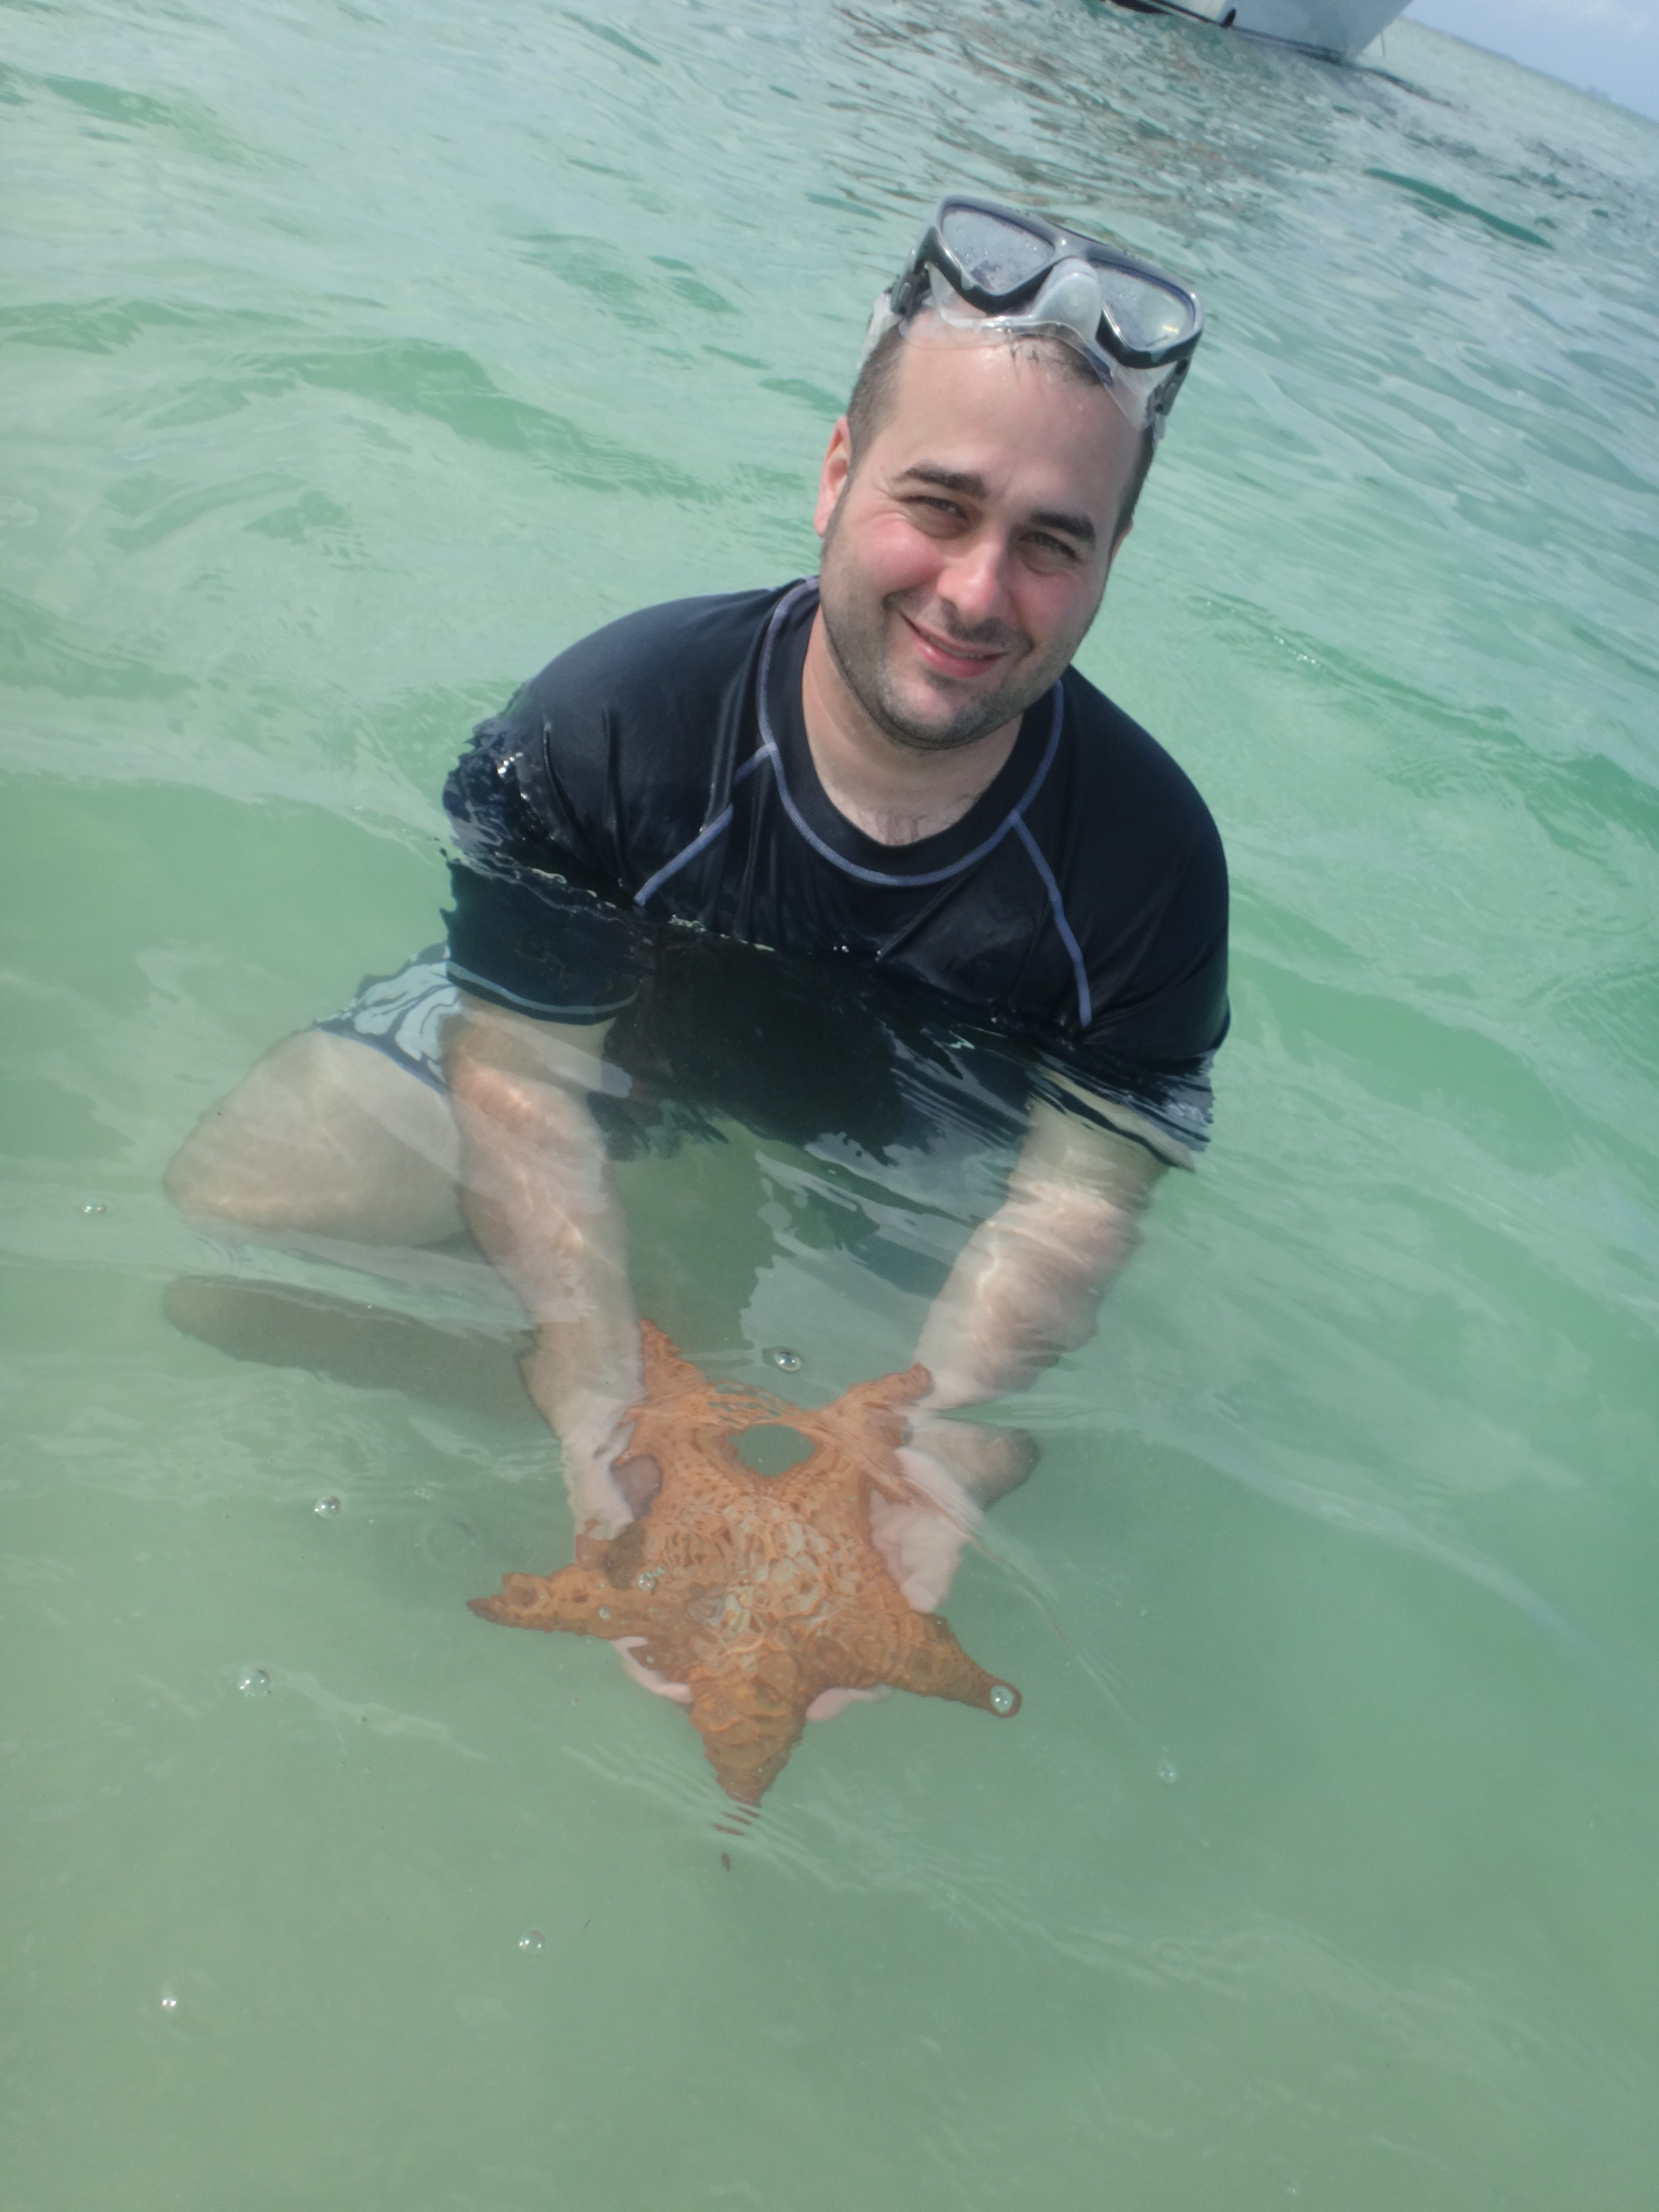 Holding a Starfish at Starfish Point in Grand Cayman